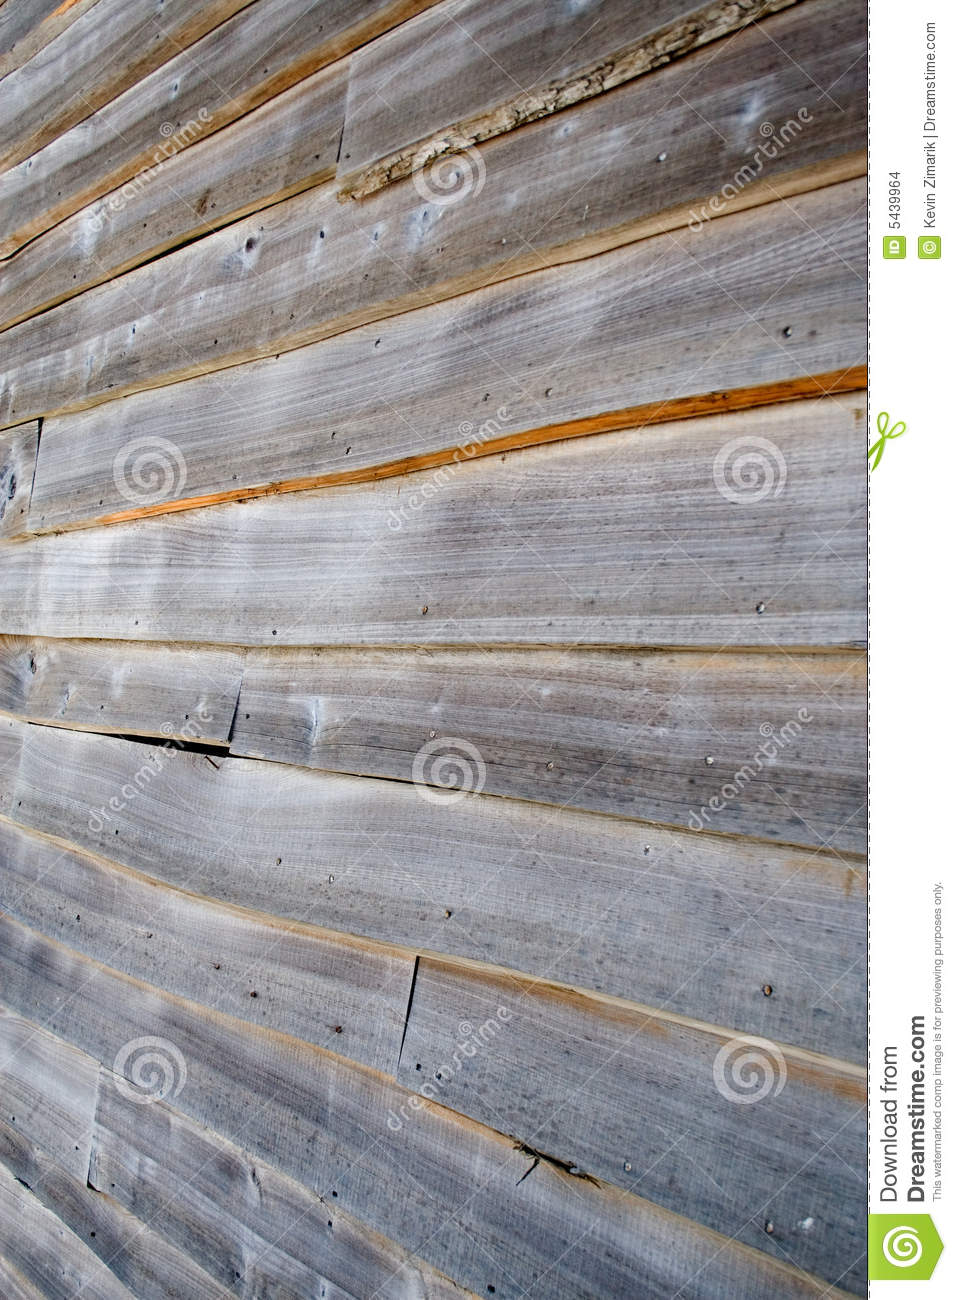 wood plank lap siding stock images   image 5439964